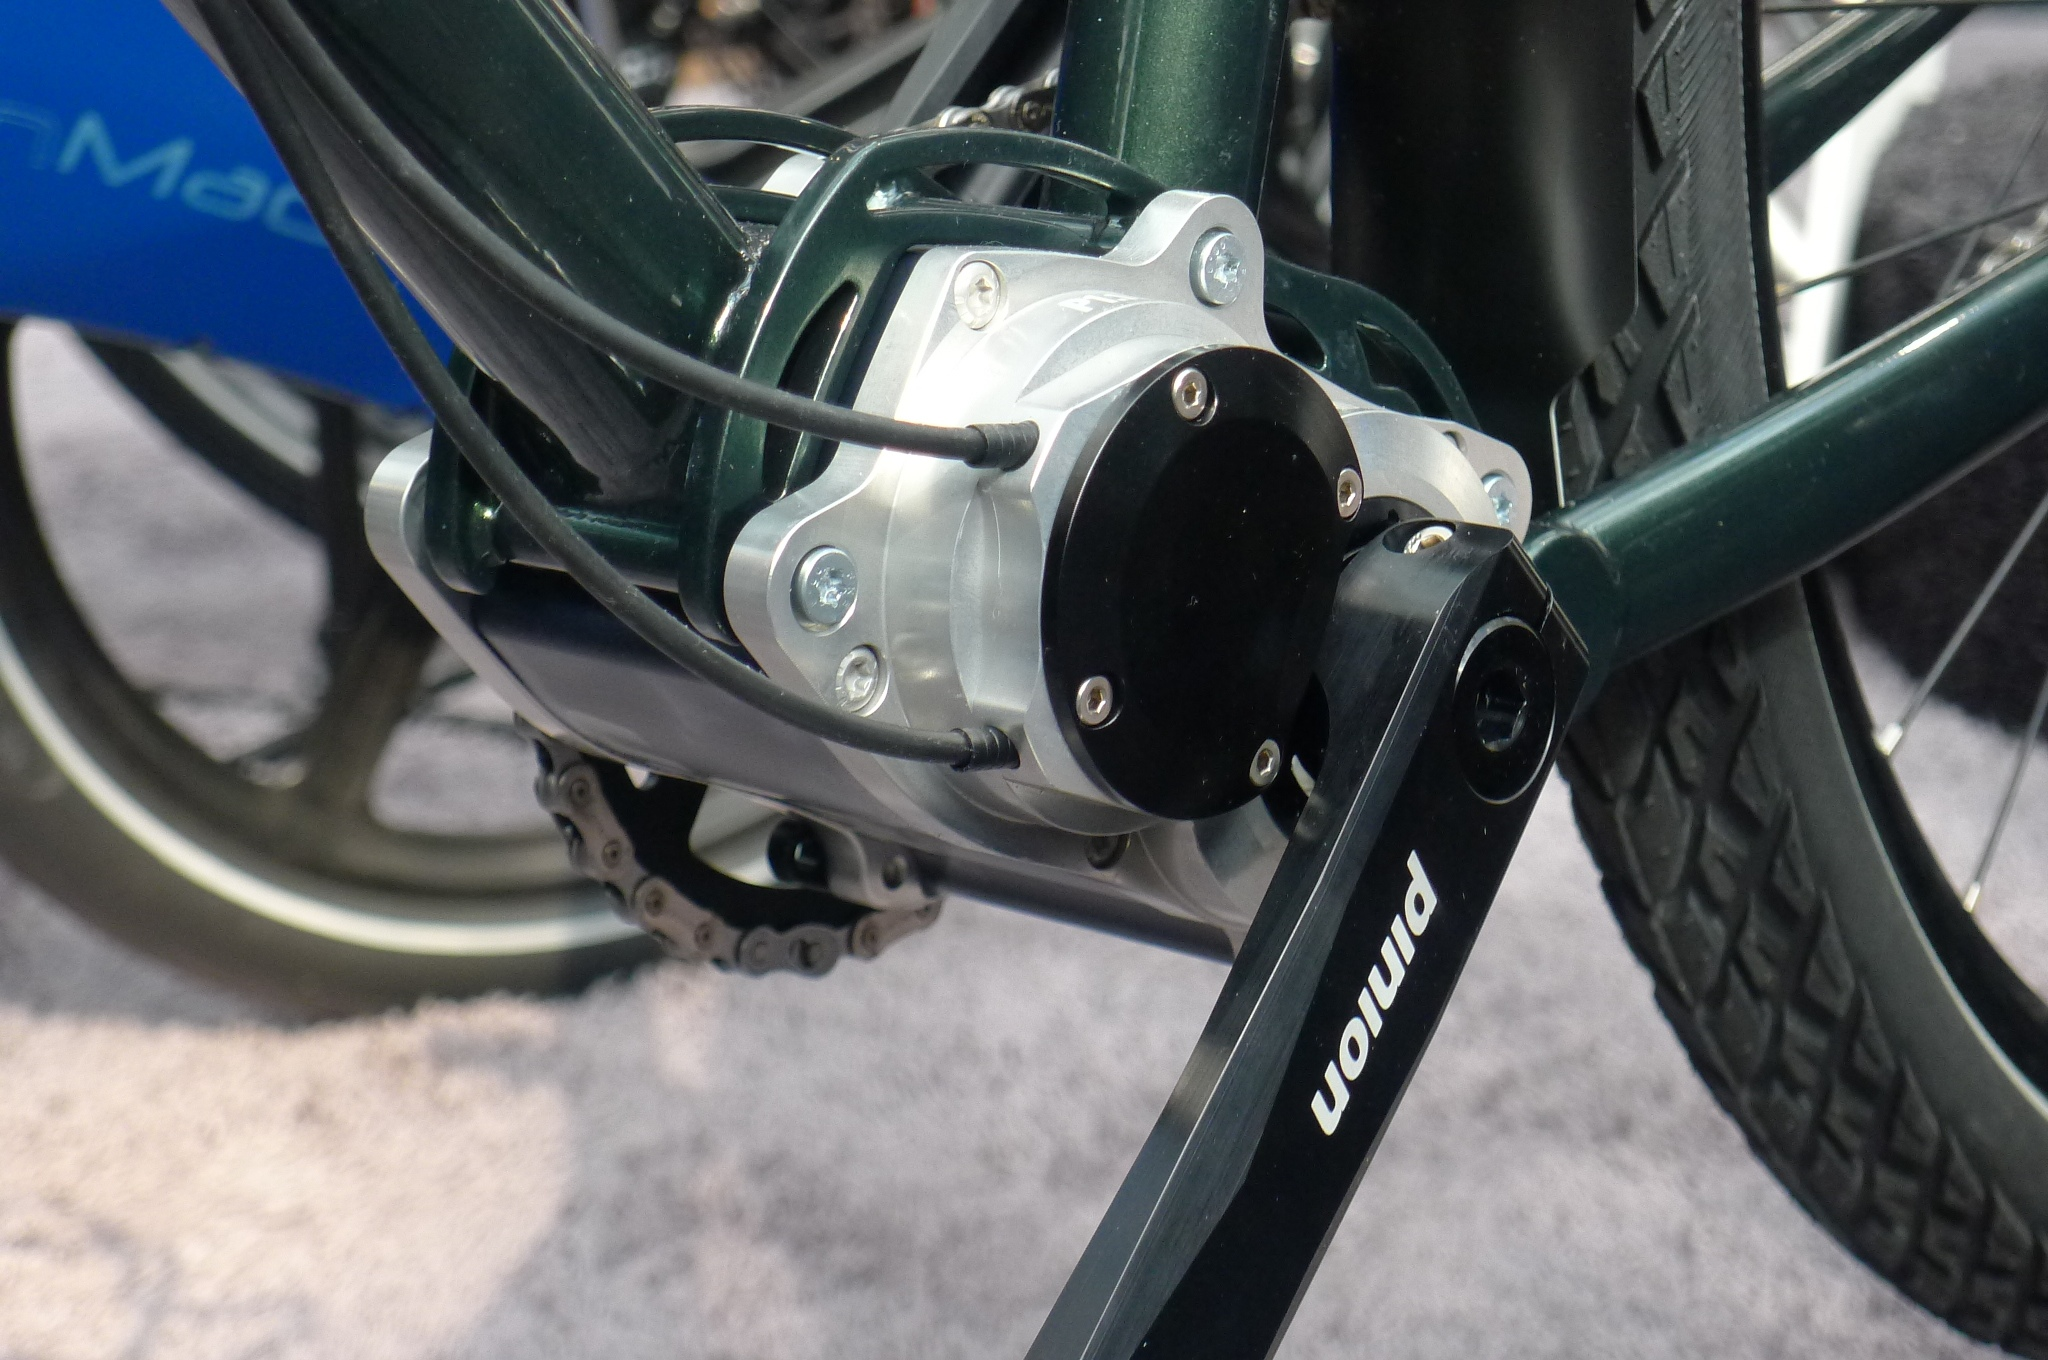 Pinion Gearbox 18 Speed The Future For Bike Touring A